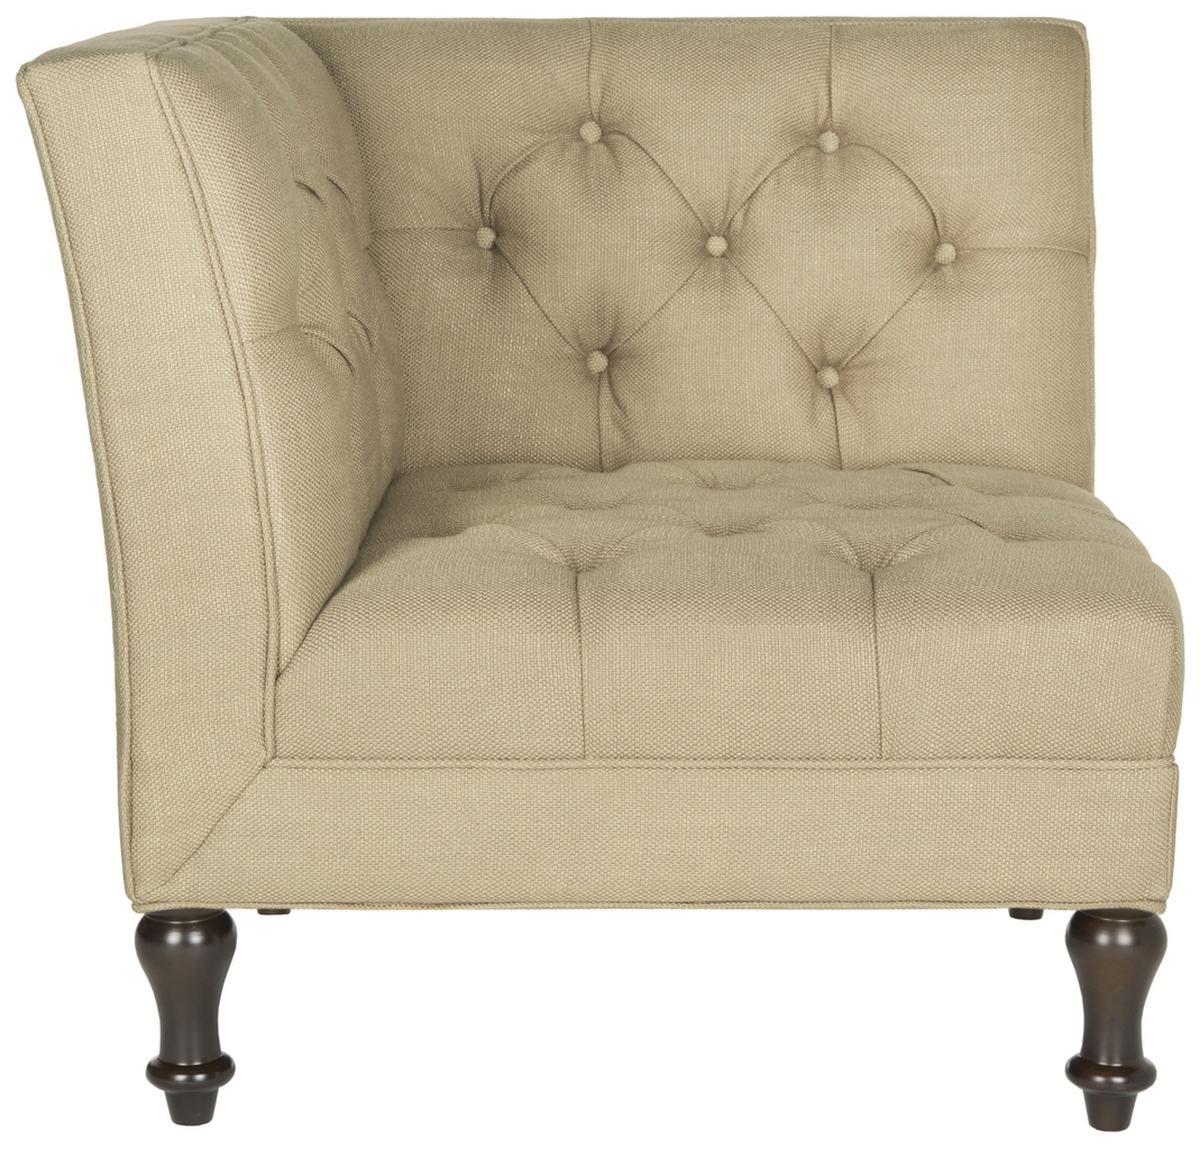 JACK TUFTED CORNER CHAIR MCR4643C Accent Chairs